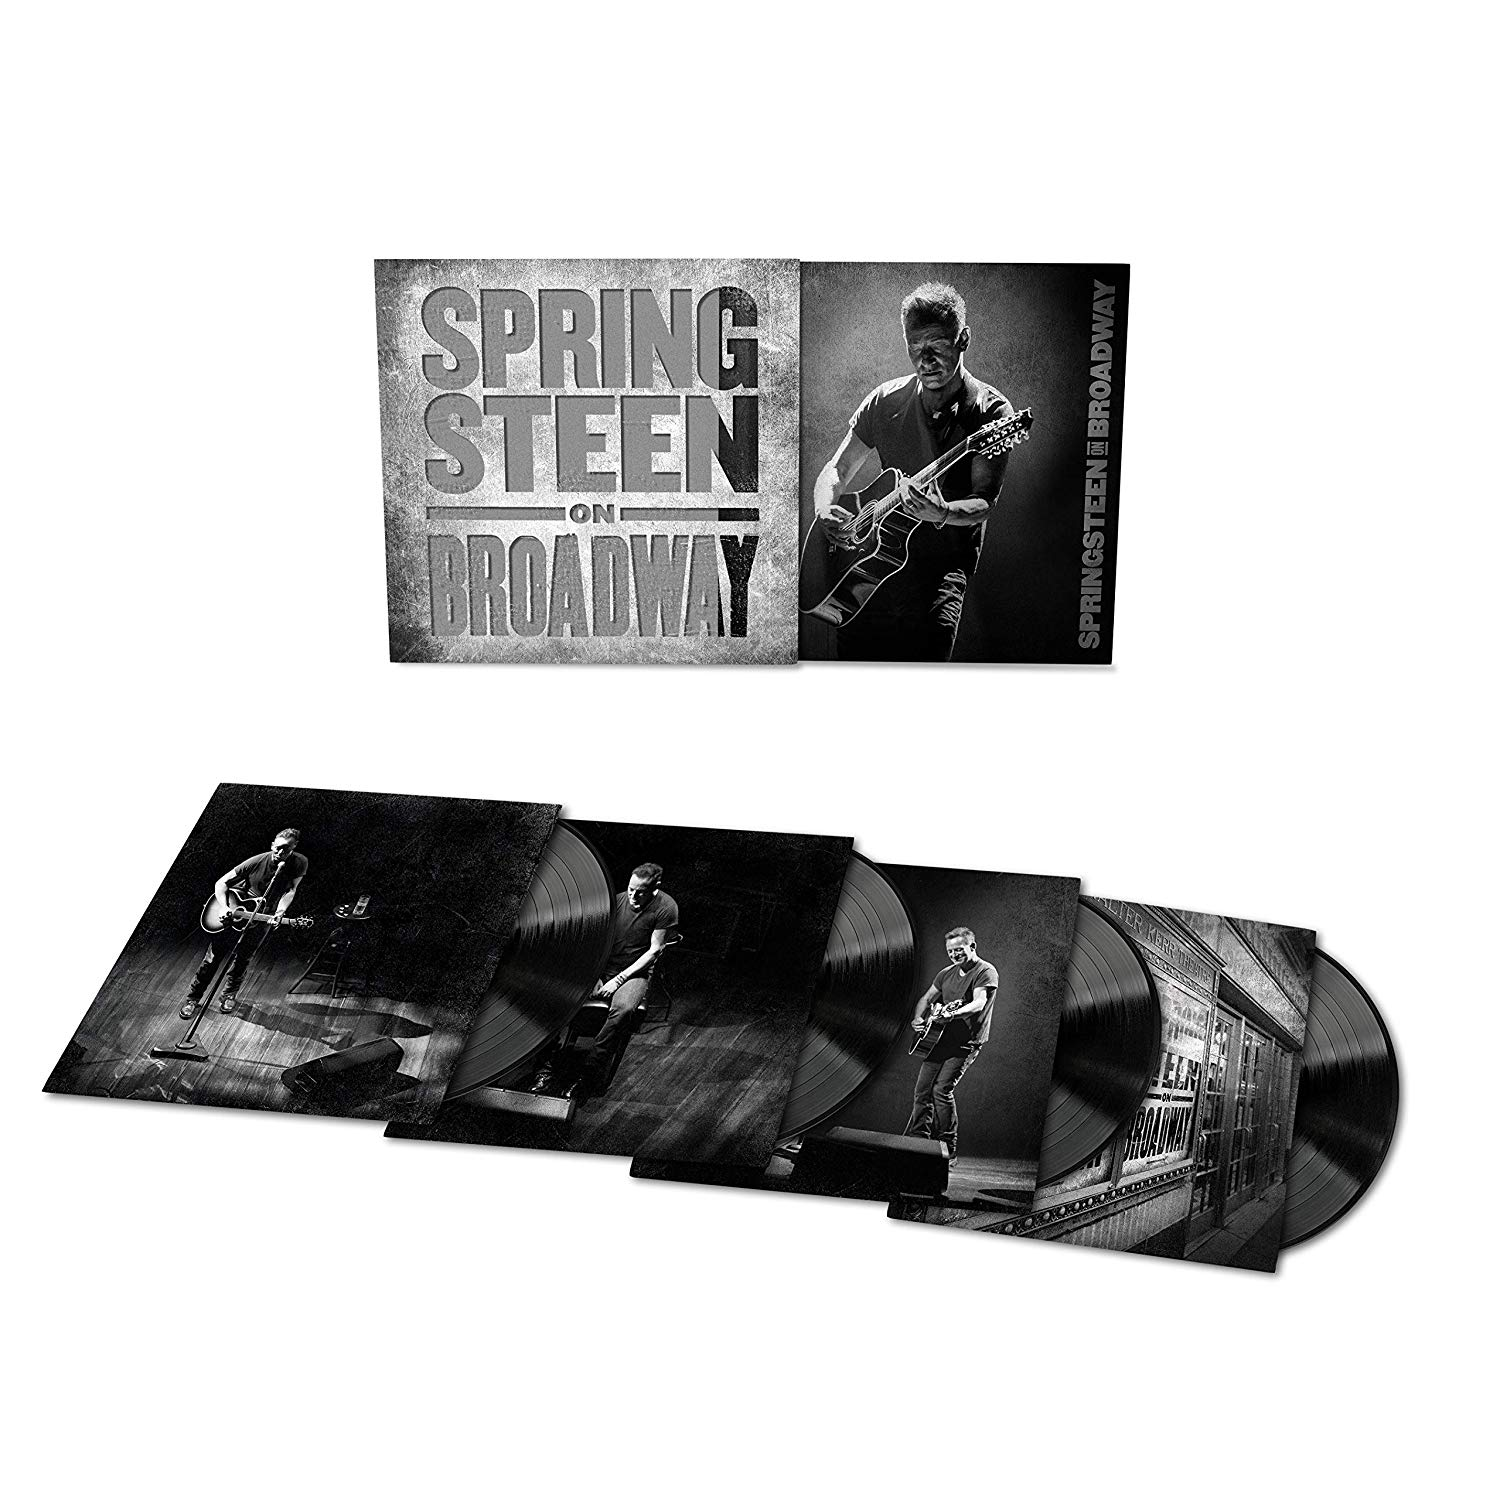 SPRINGSTEEN ON BROADWAY -BOX SET-